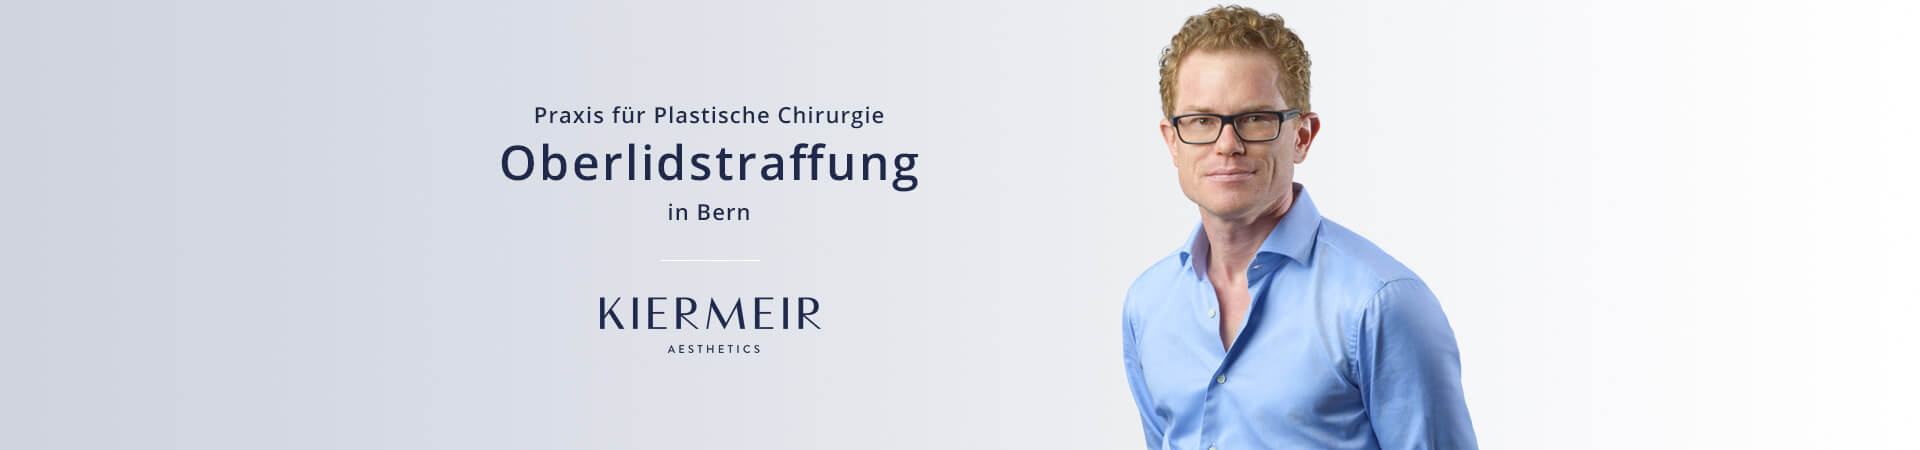 Oberlidstraffung in Bern - Dr. David Kiermeir